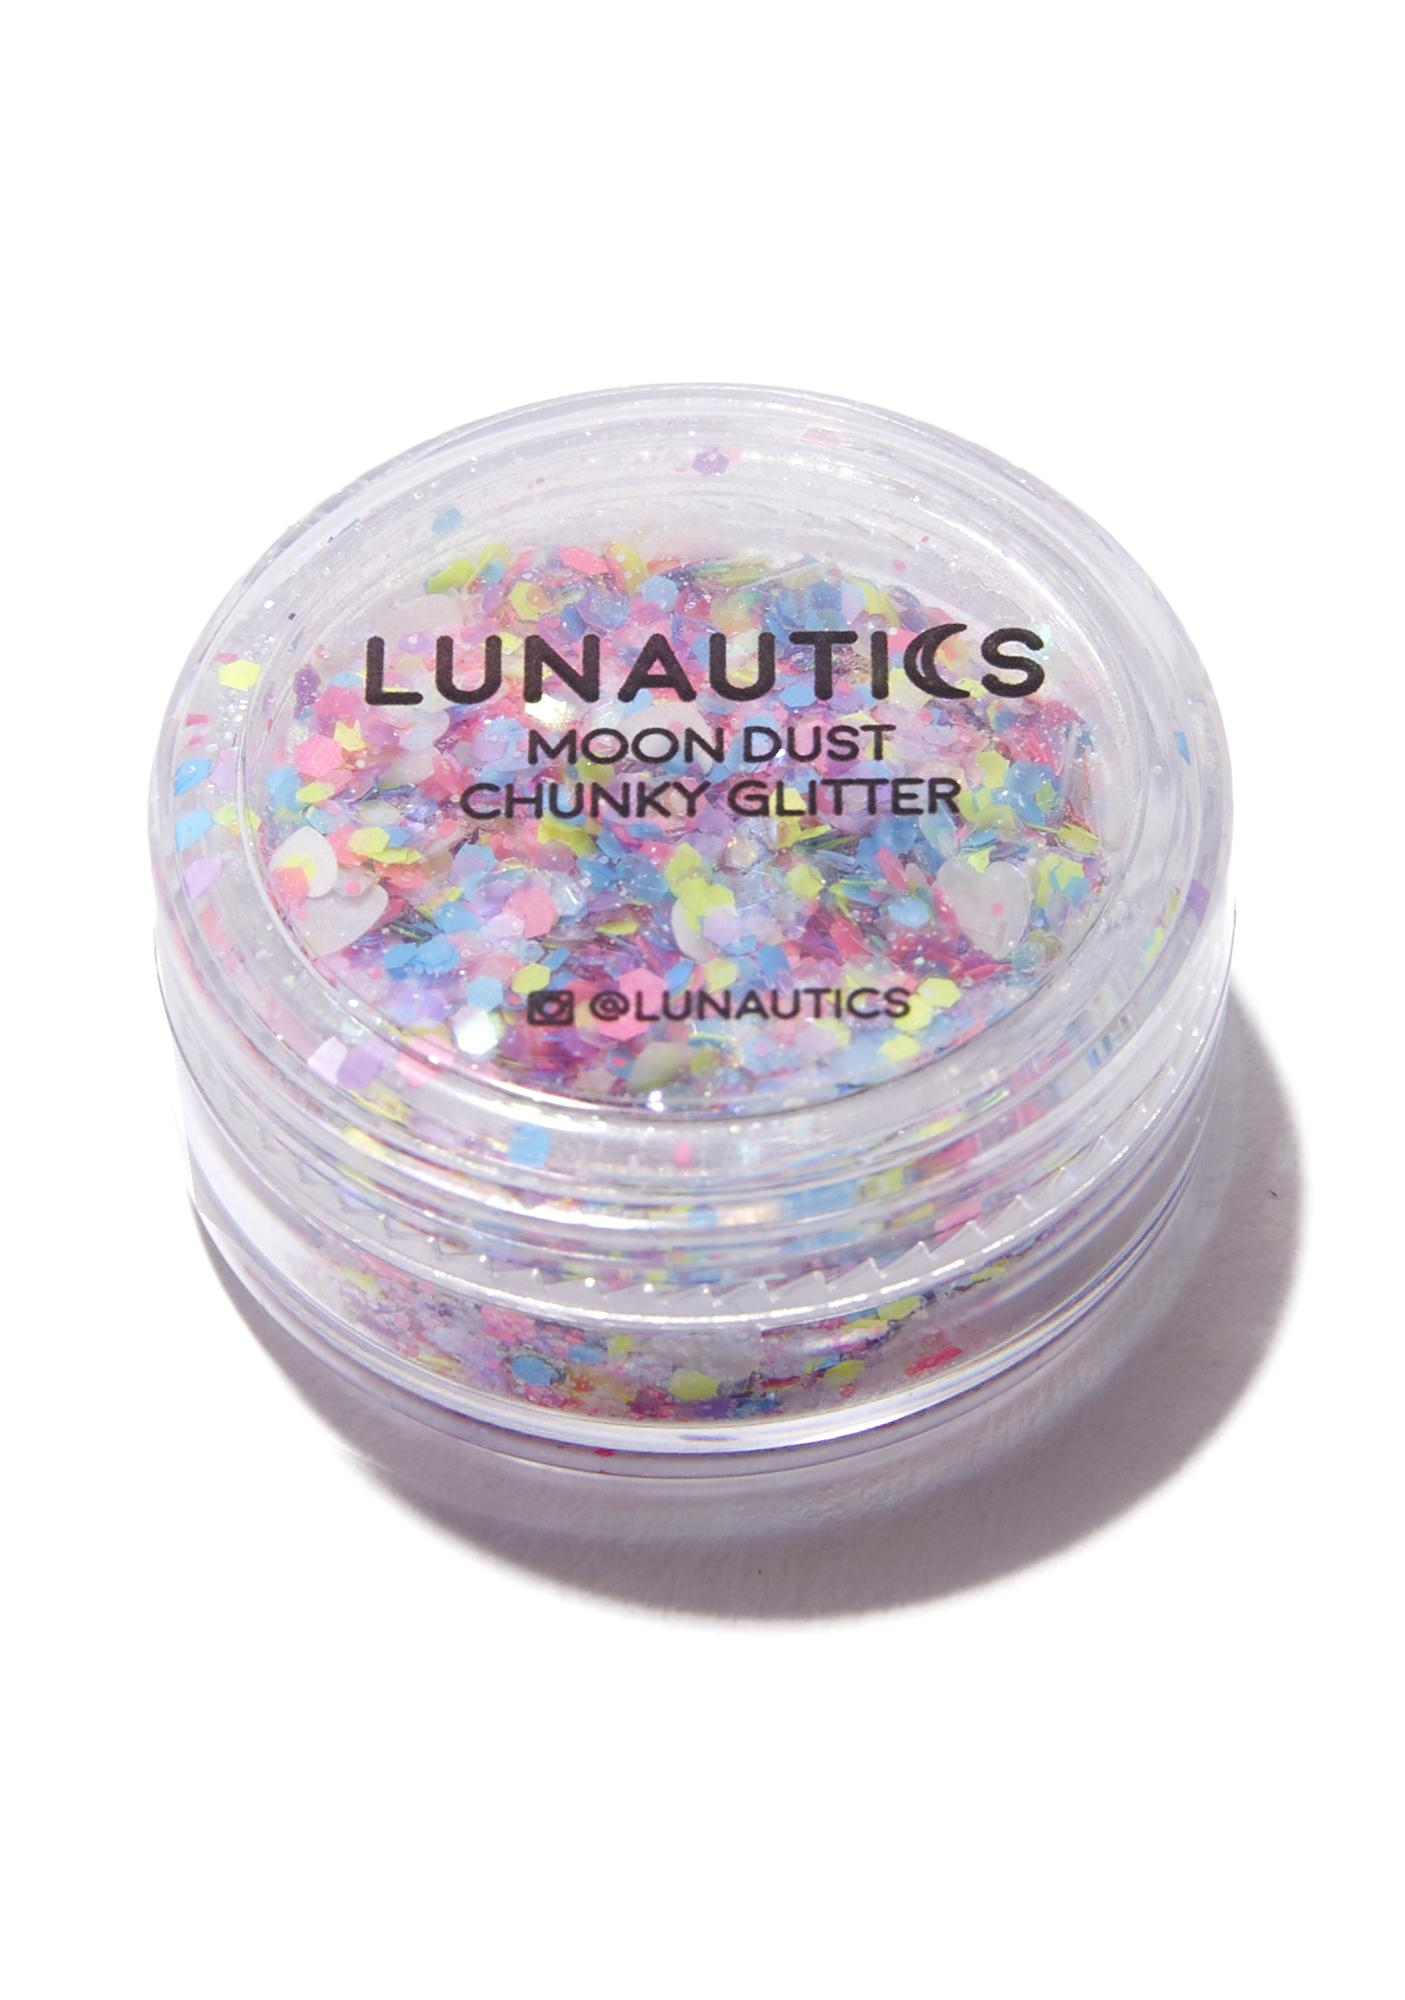 Lunautics 1993 Moon Dust Glitter